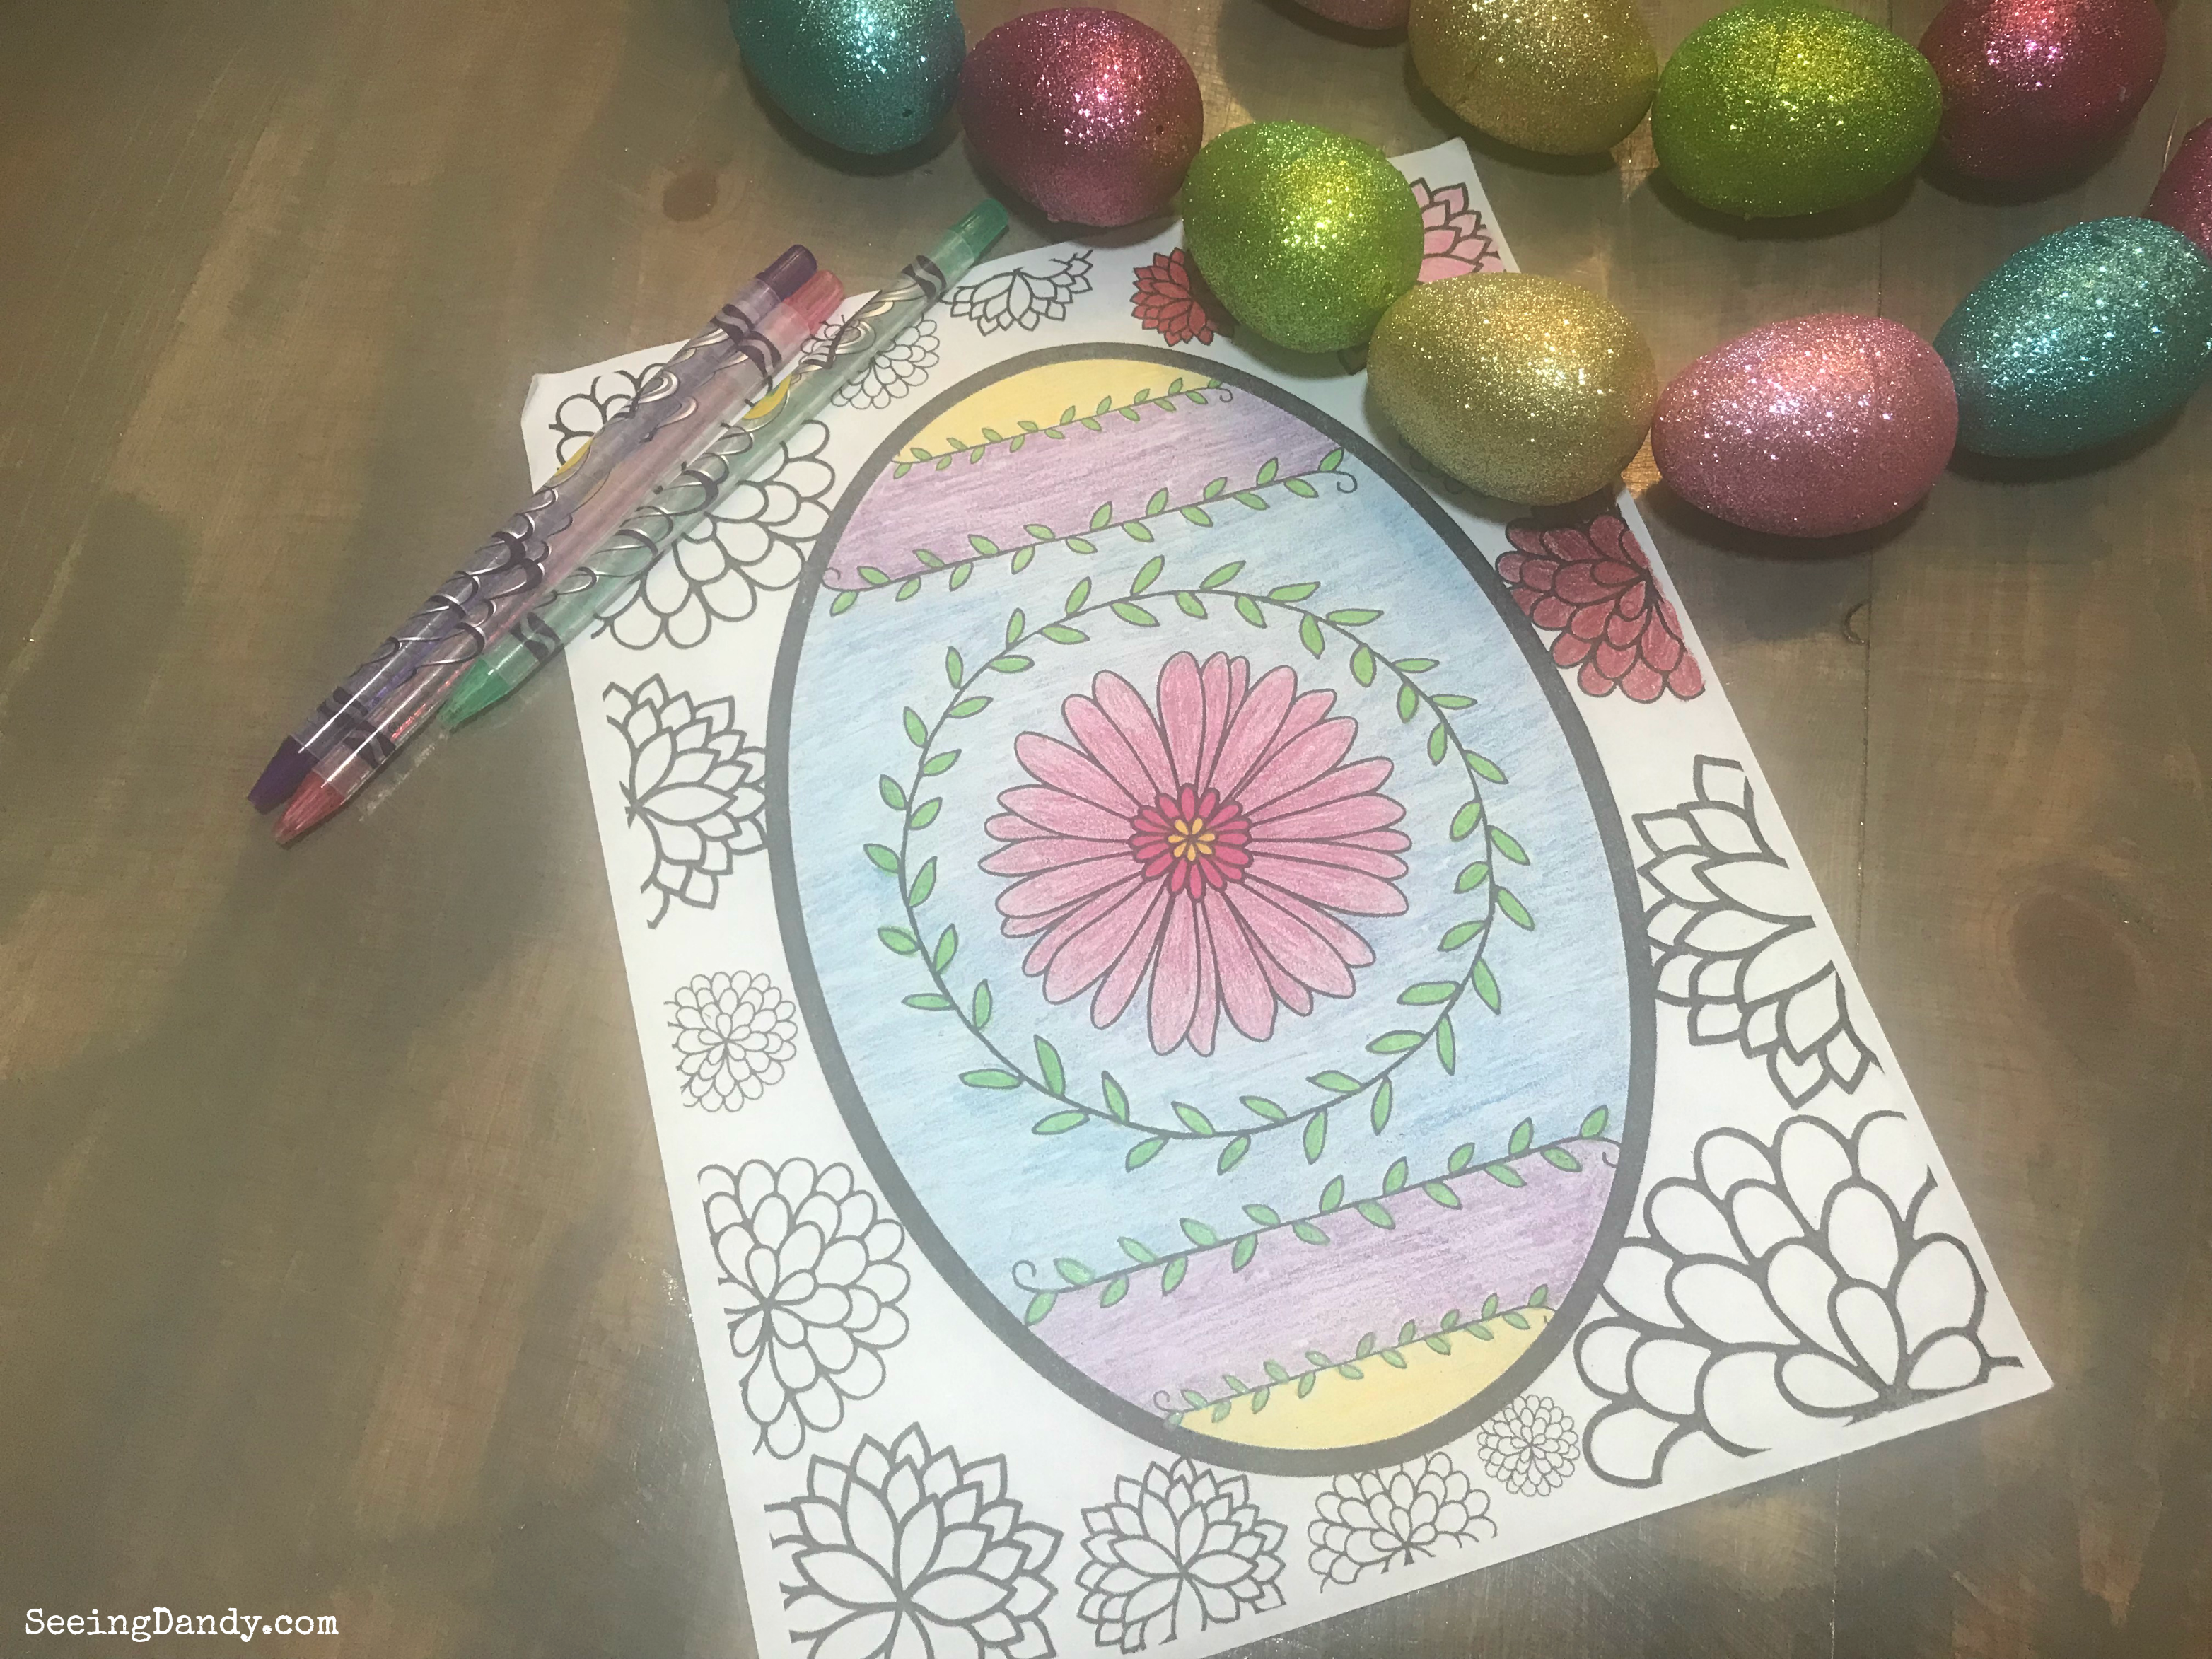 Free printable Easter egg coloring page that is Faberge egg style.